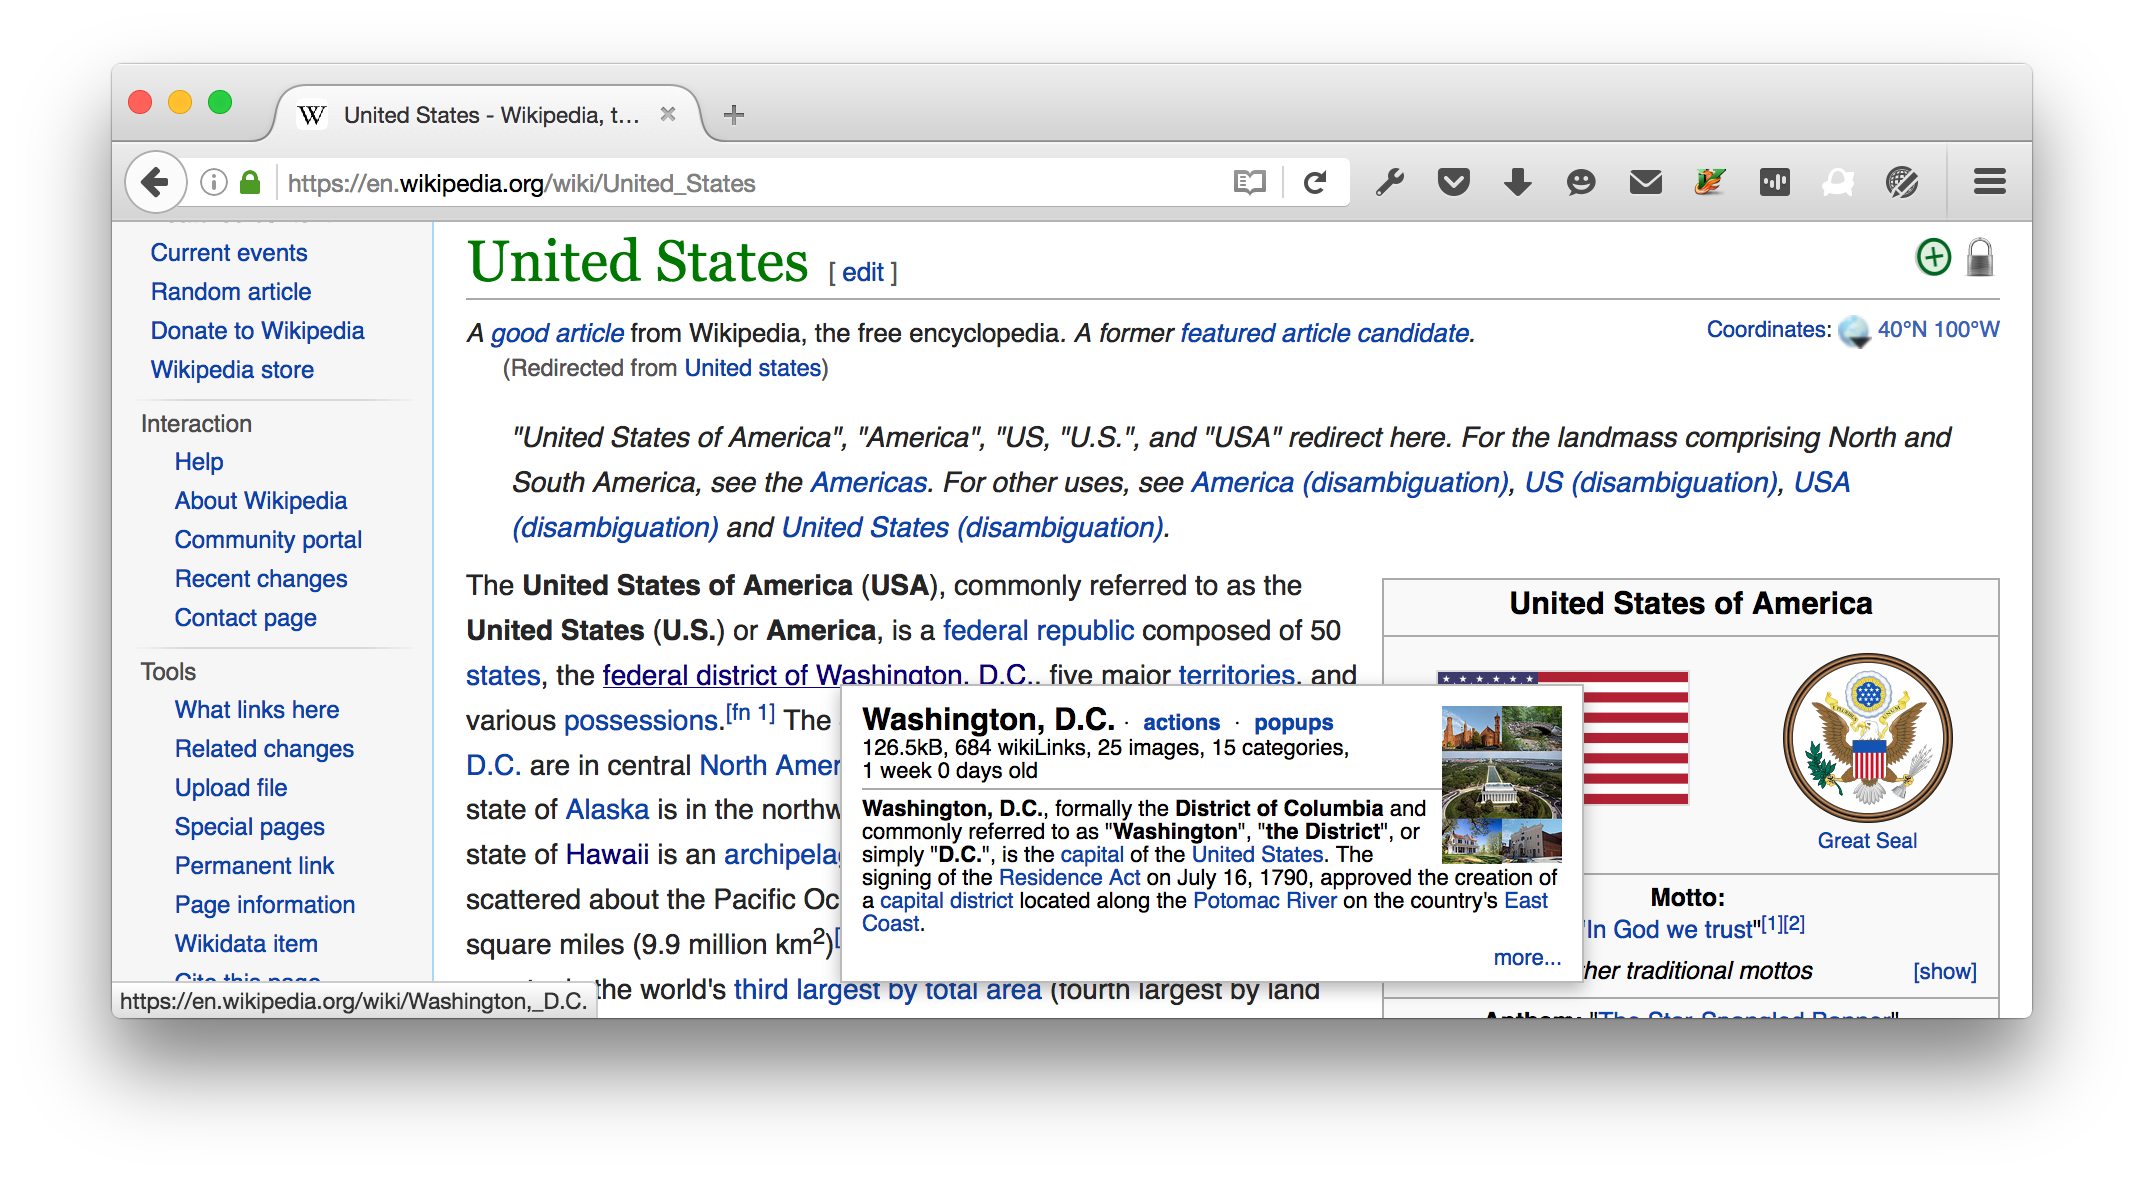 wikipedia link mouse-over shows next page pop-up